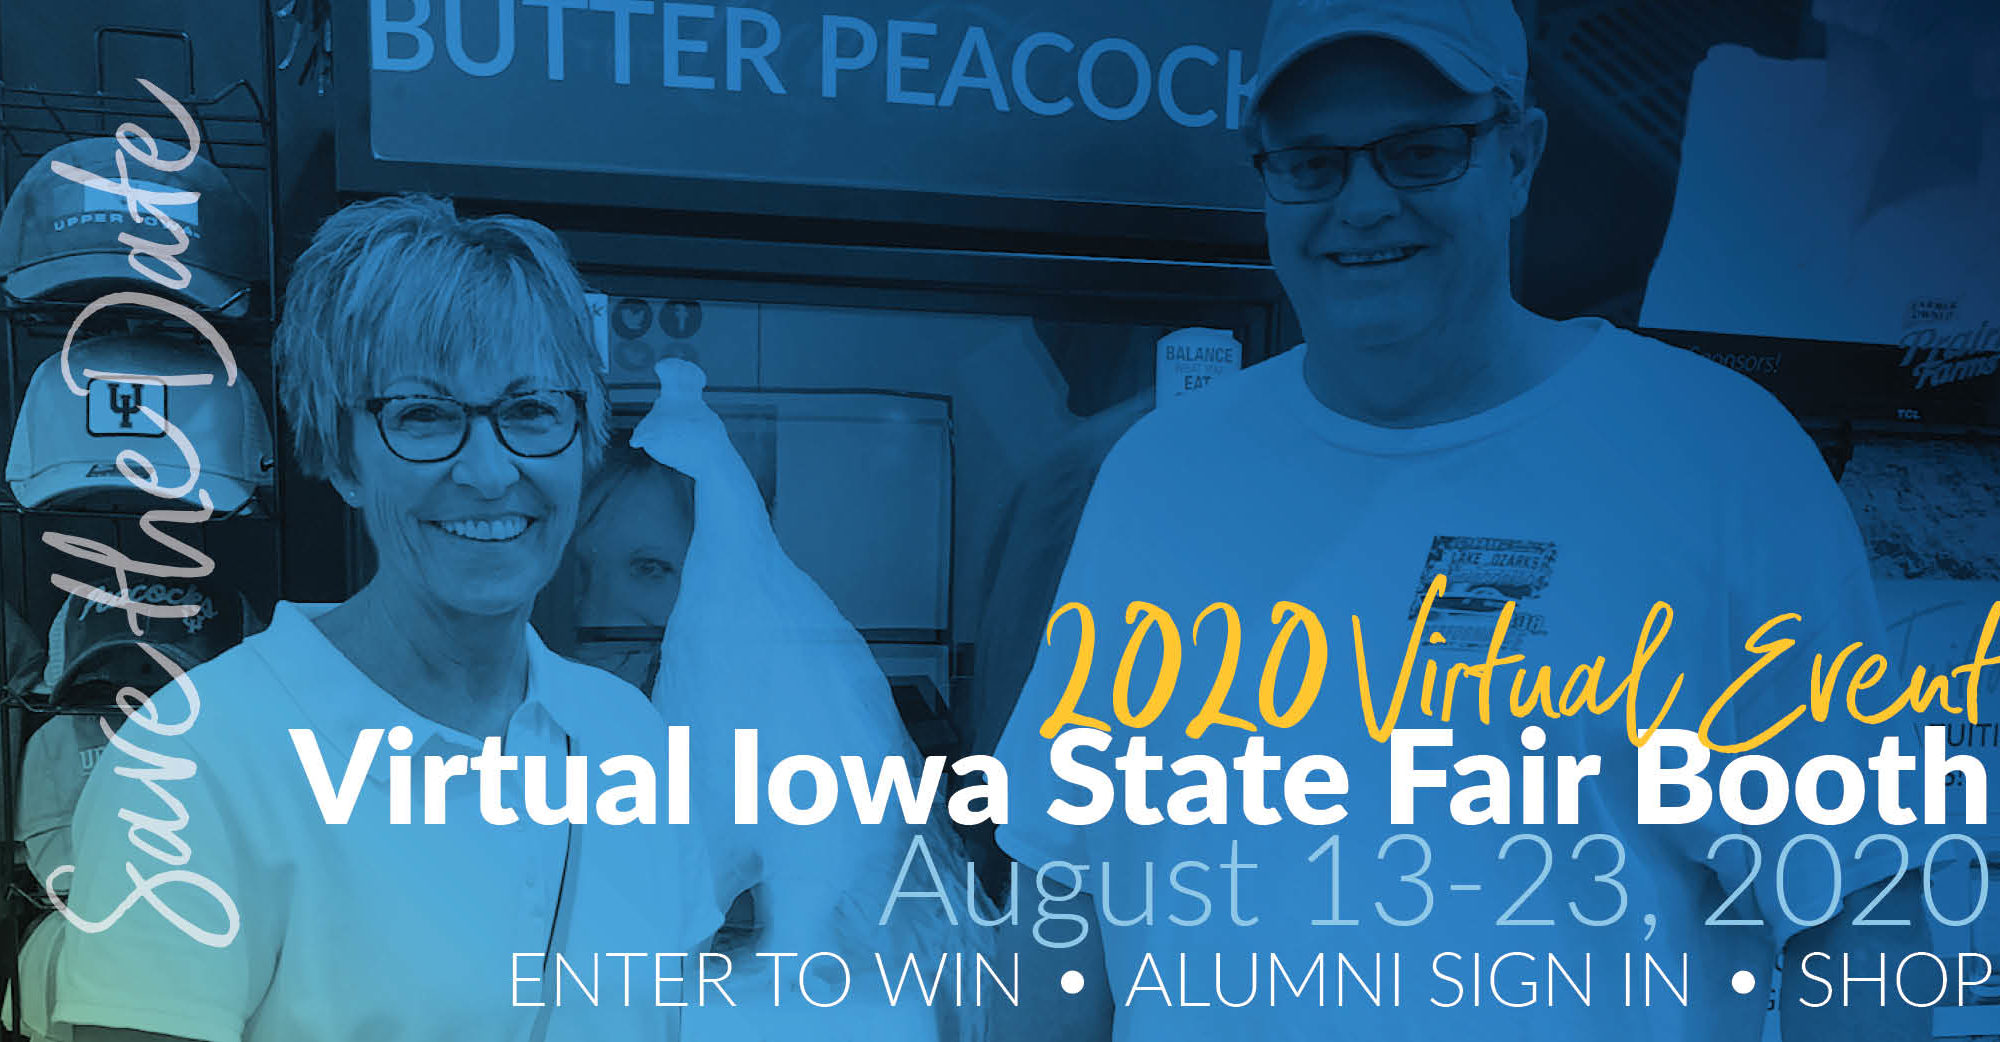 Iowa-State-Fair-Booth-Header2